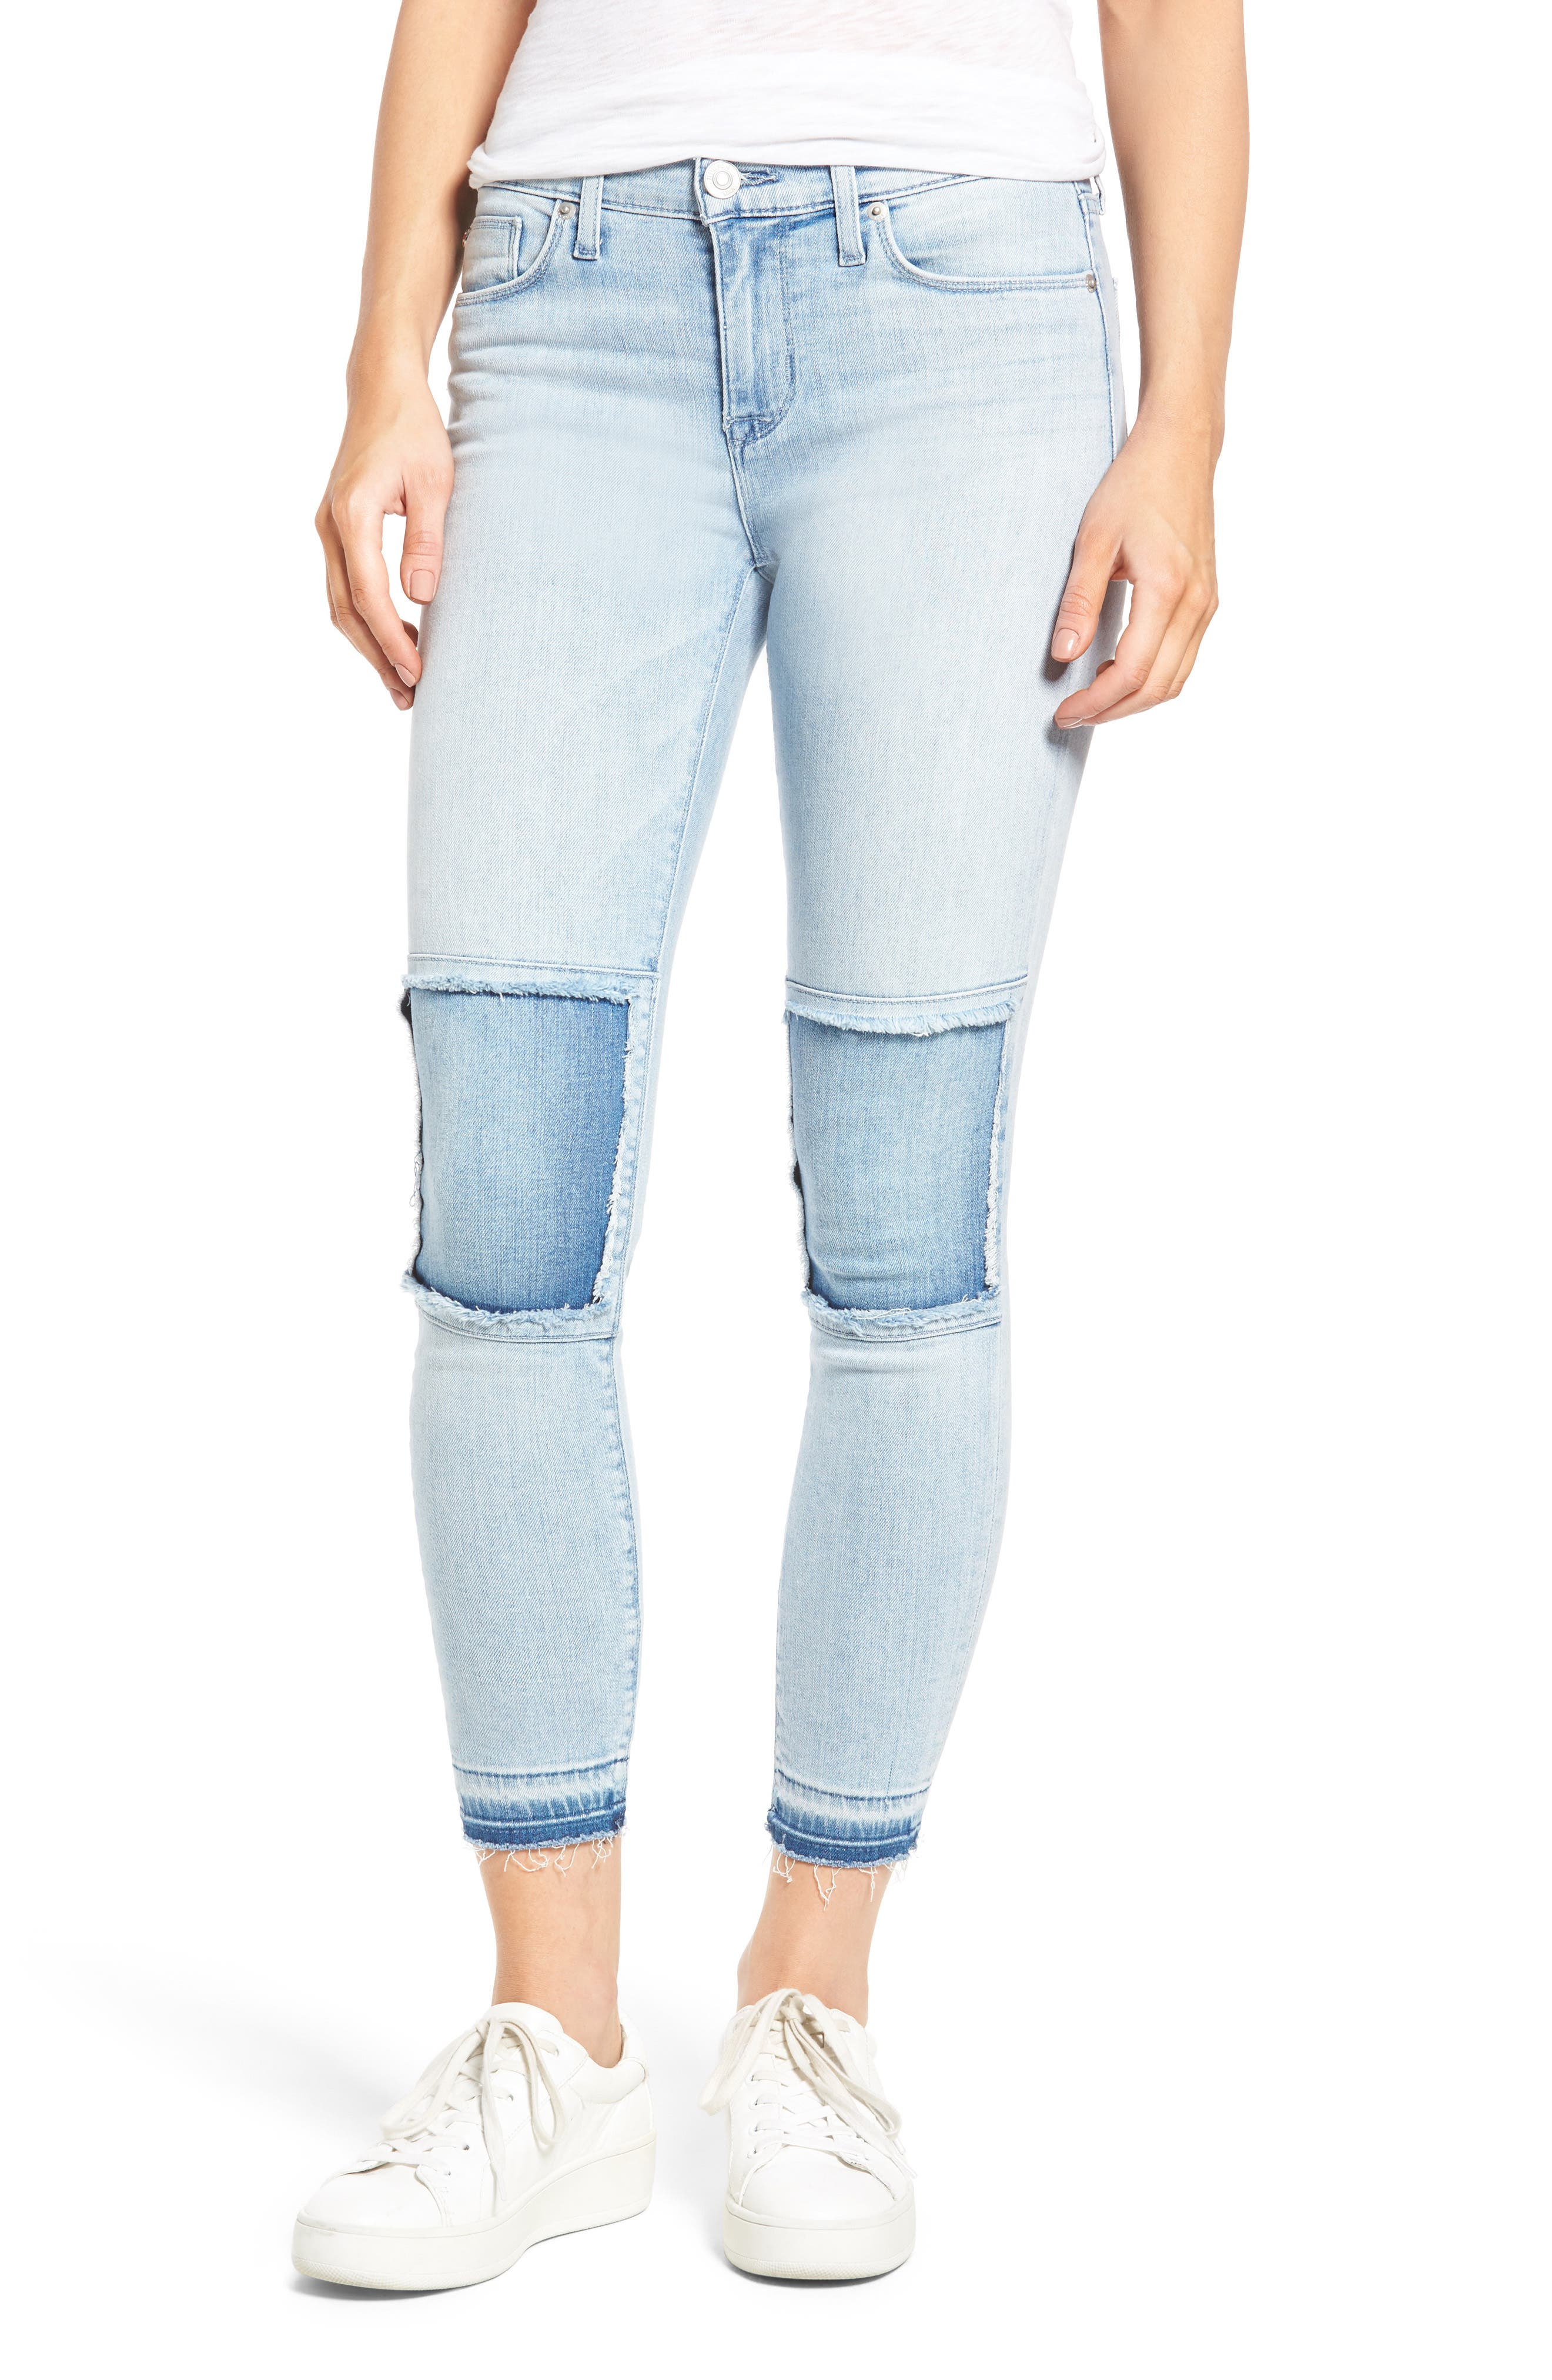 Main Image - Hudson Jeans Szzi Mid Rise Patched Skinny Jeans (Venue)